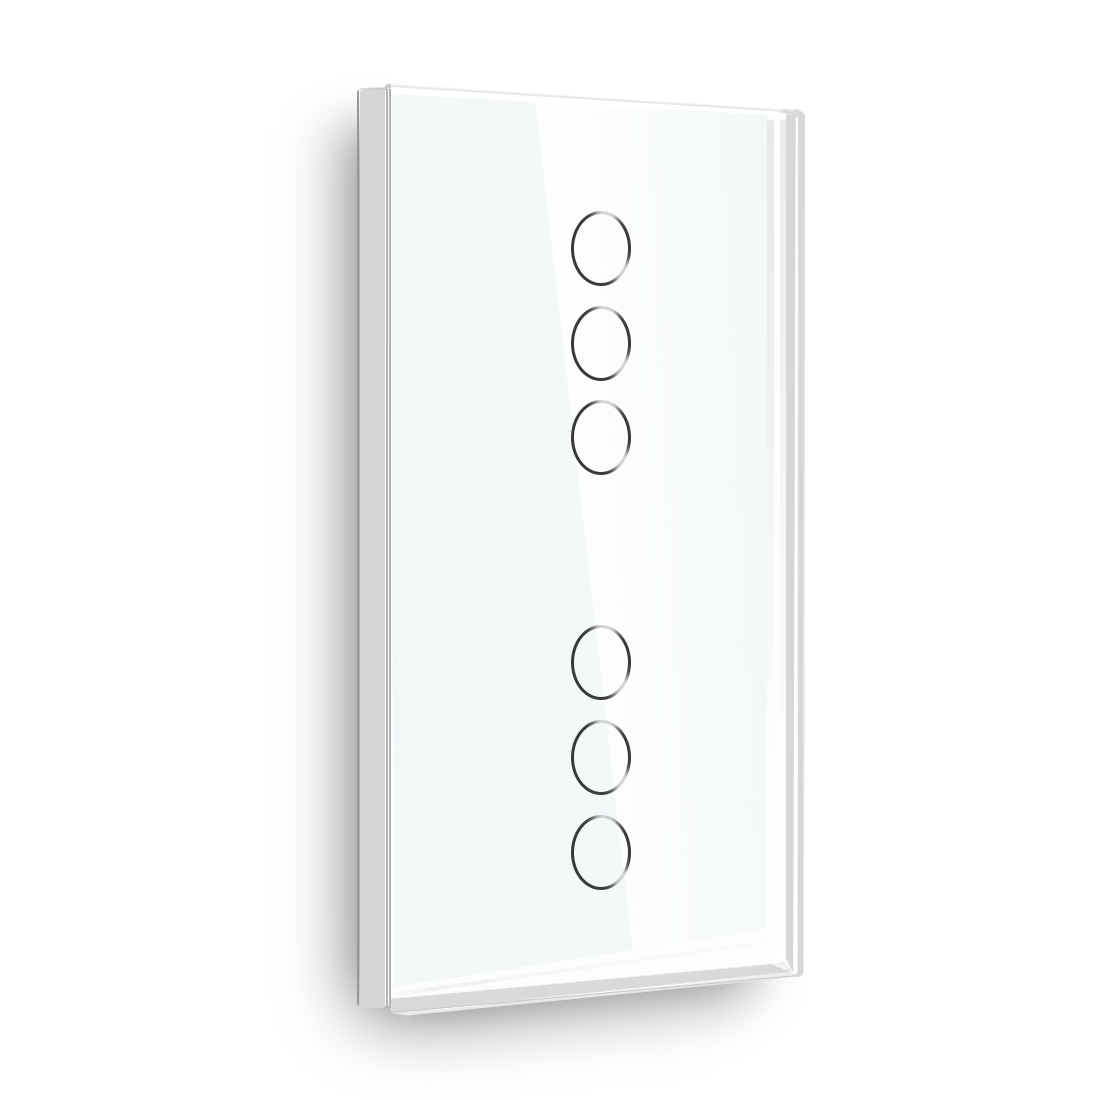 Bseed Wall Touch Switch 3 Gang 1 Way 2 Light Power Coming In At With Switches